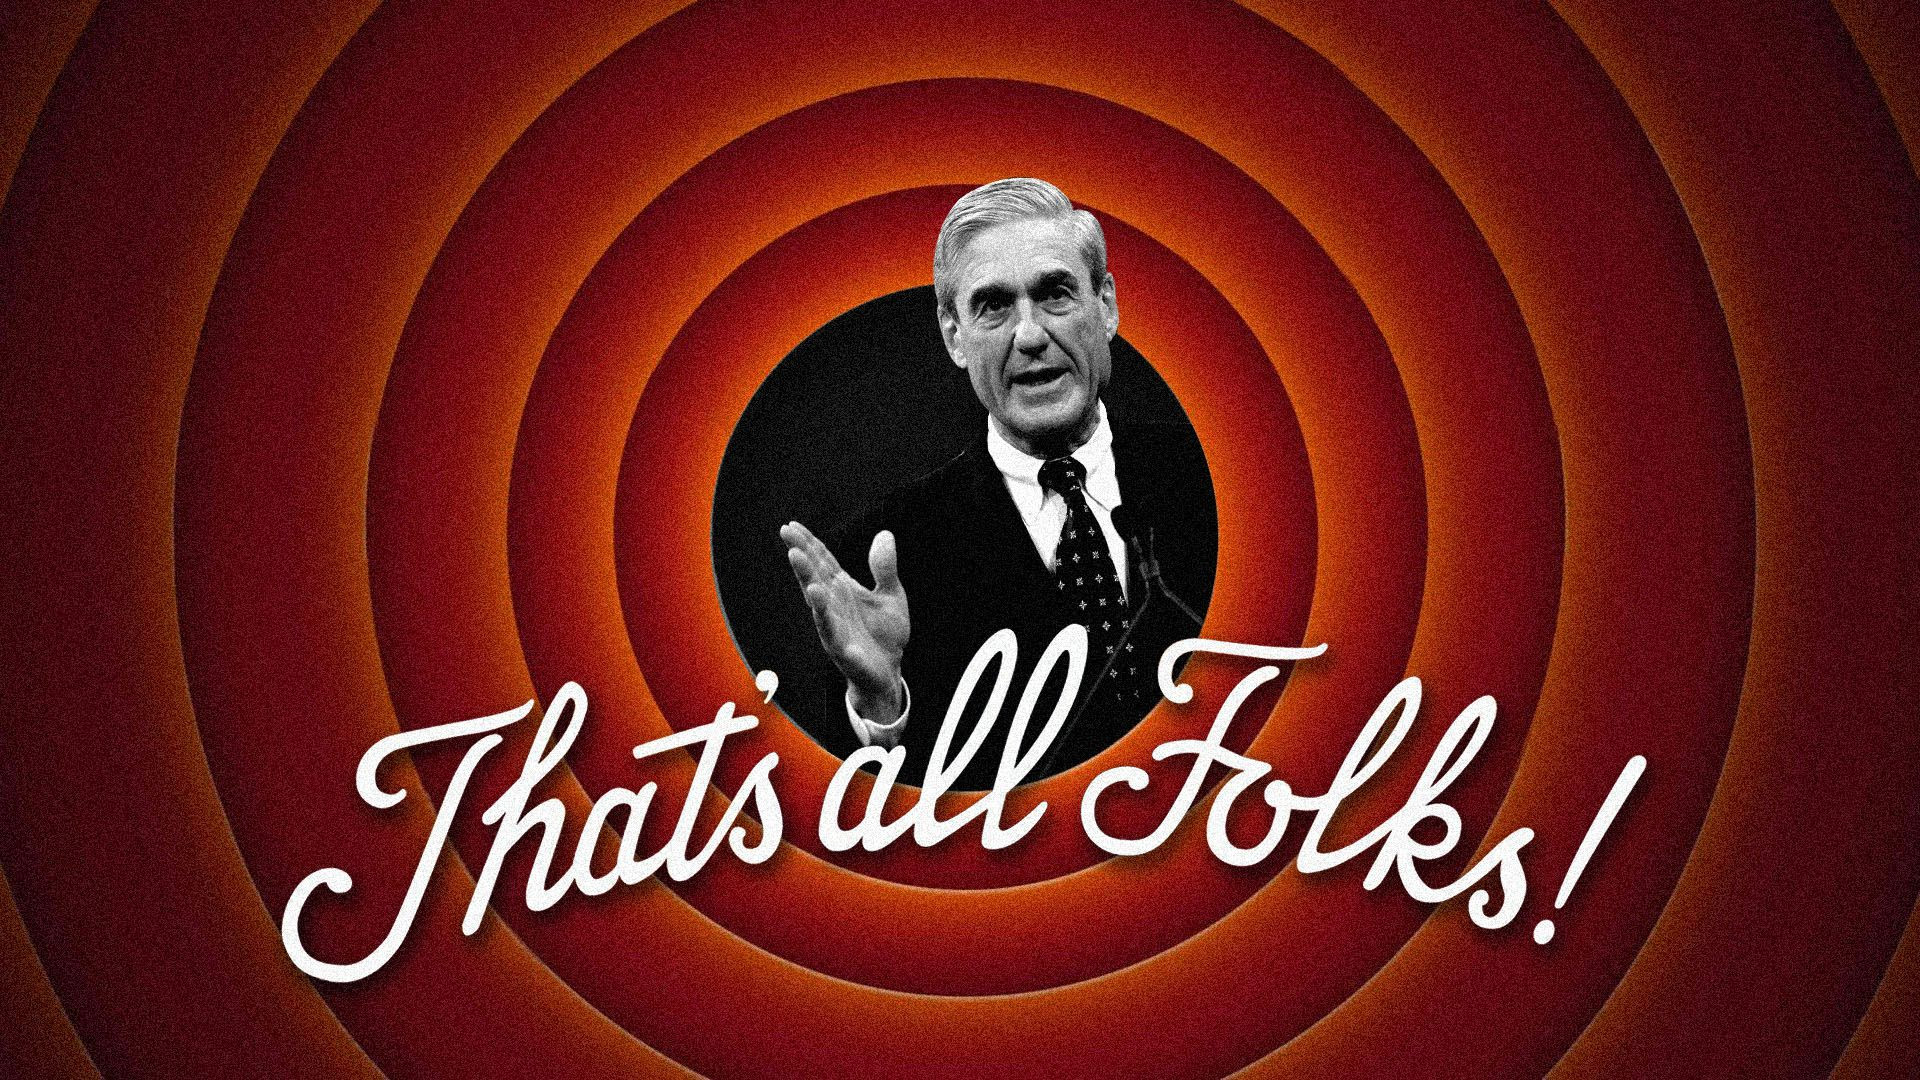 Real of Fake? You decide AXIOS -> Signs point to Mueller acceleration + Mueller has lots of unrevealed email